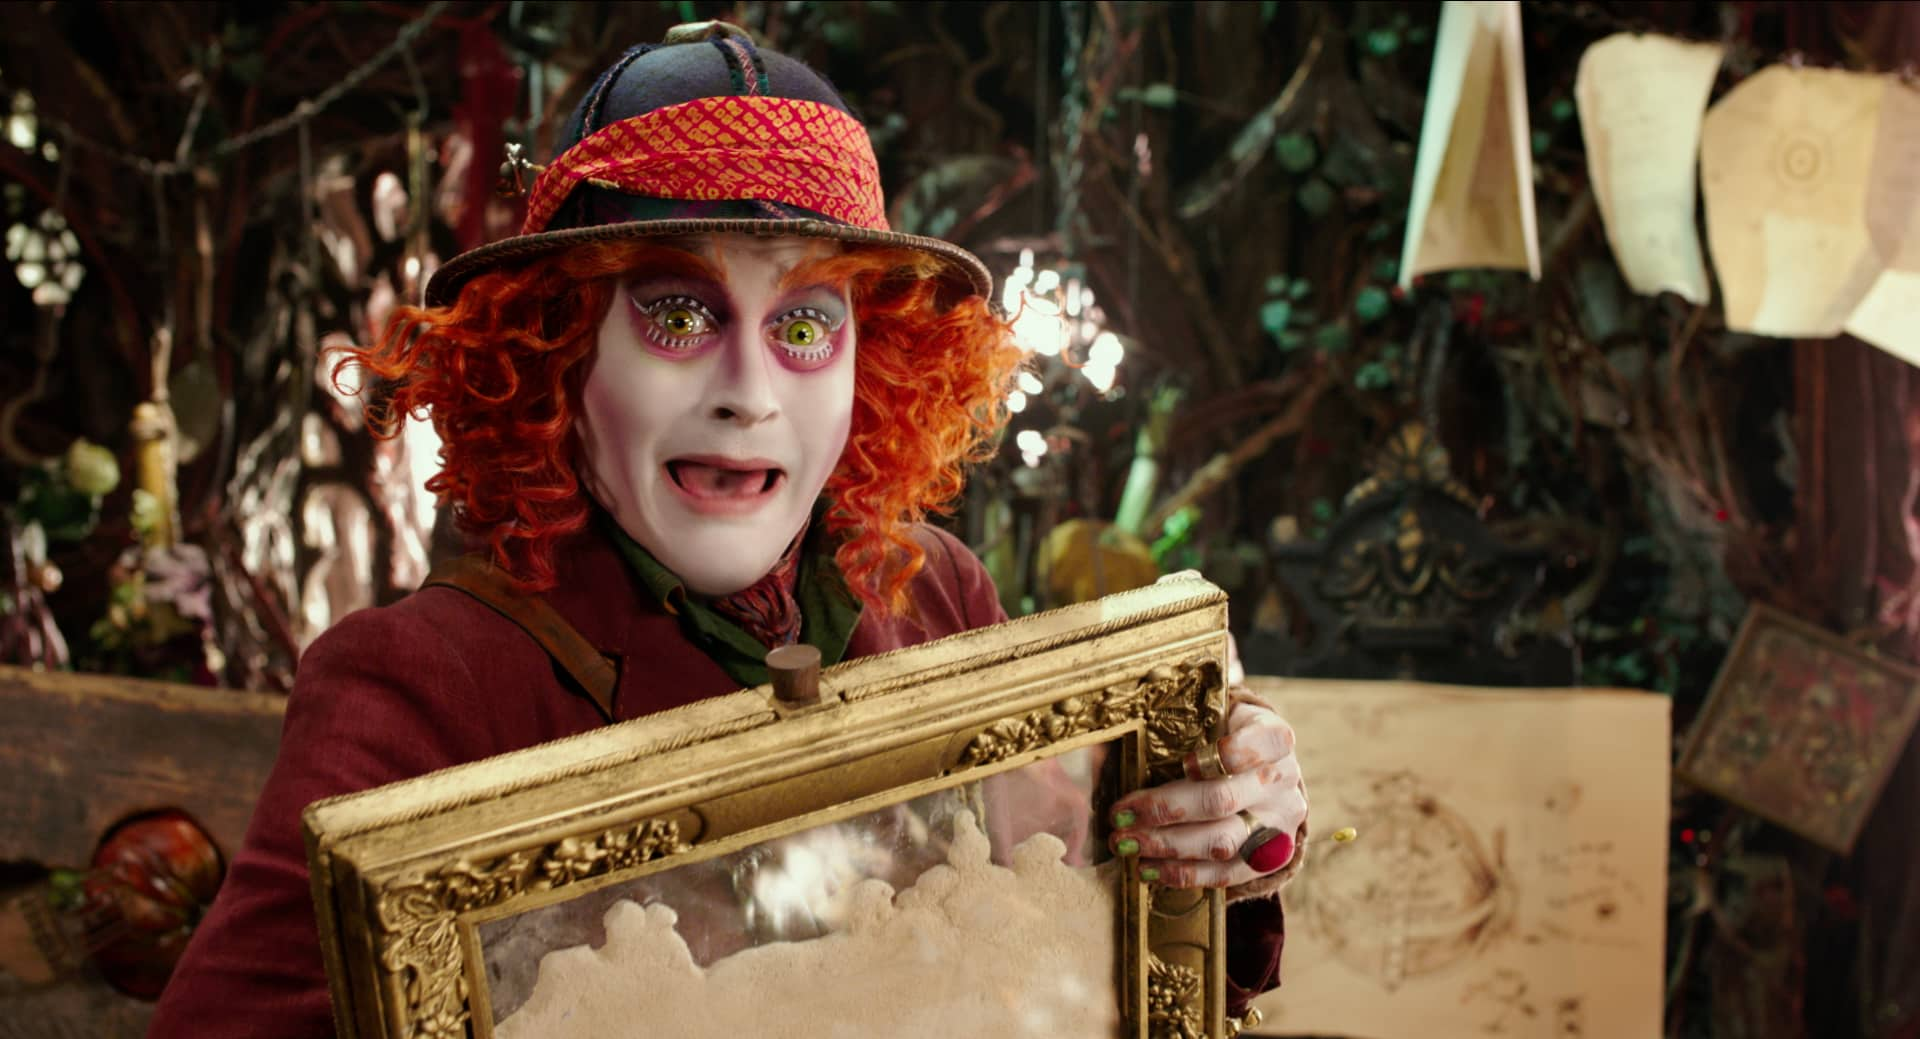 Johnny Depp is Hatter in Disney's ALICE THROUGH THE LOOKING GLASS, an all new adventure featuring the characters from Lewis Carroll's beloved stories..